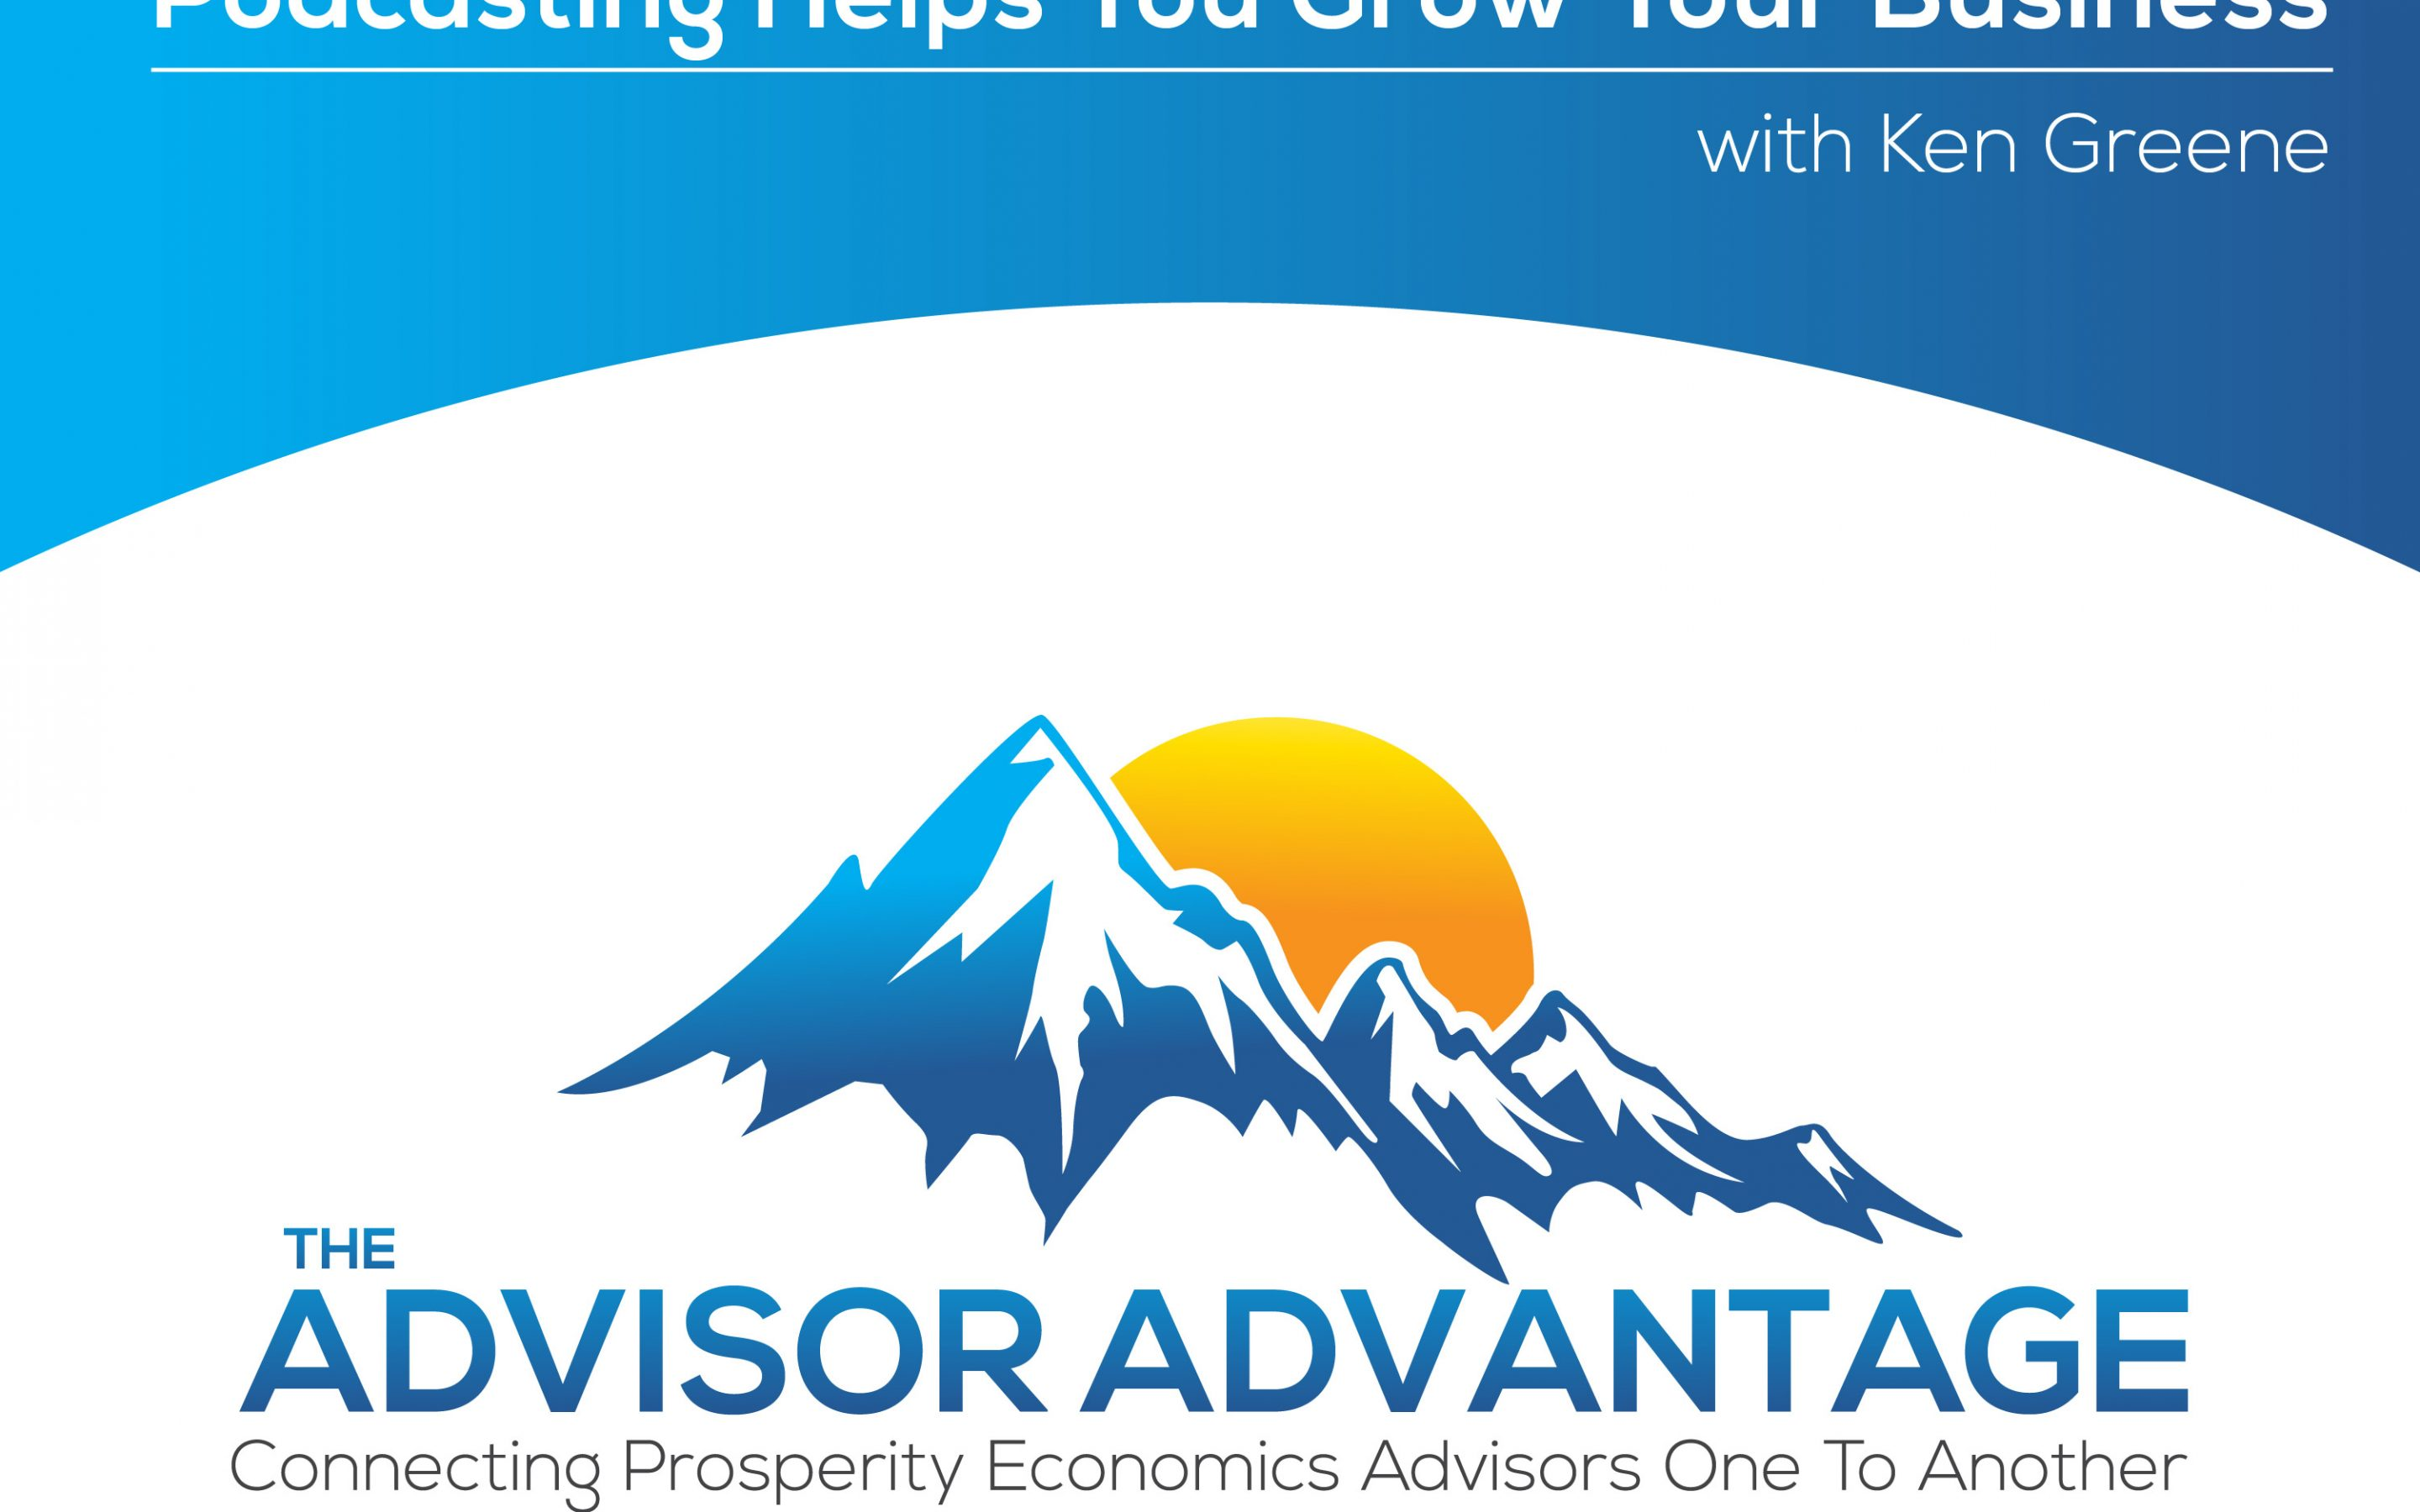 Podcasting Helps You Grow Your Business with Ken Greene – Episode 106